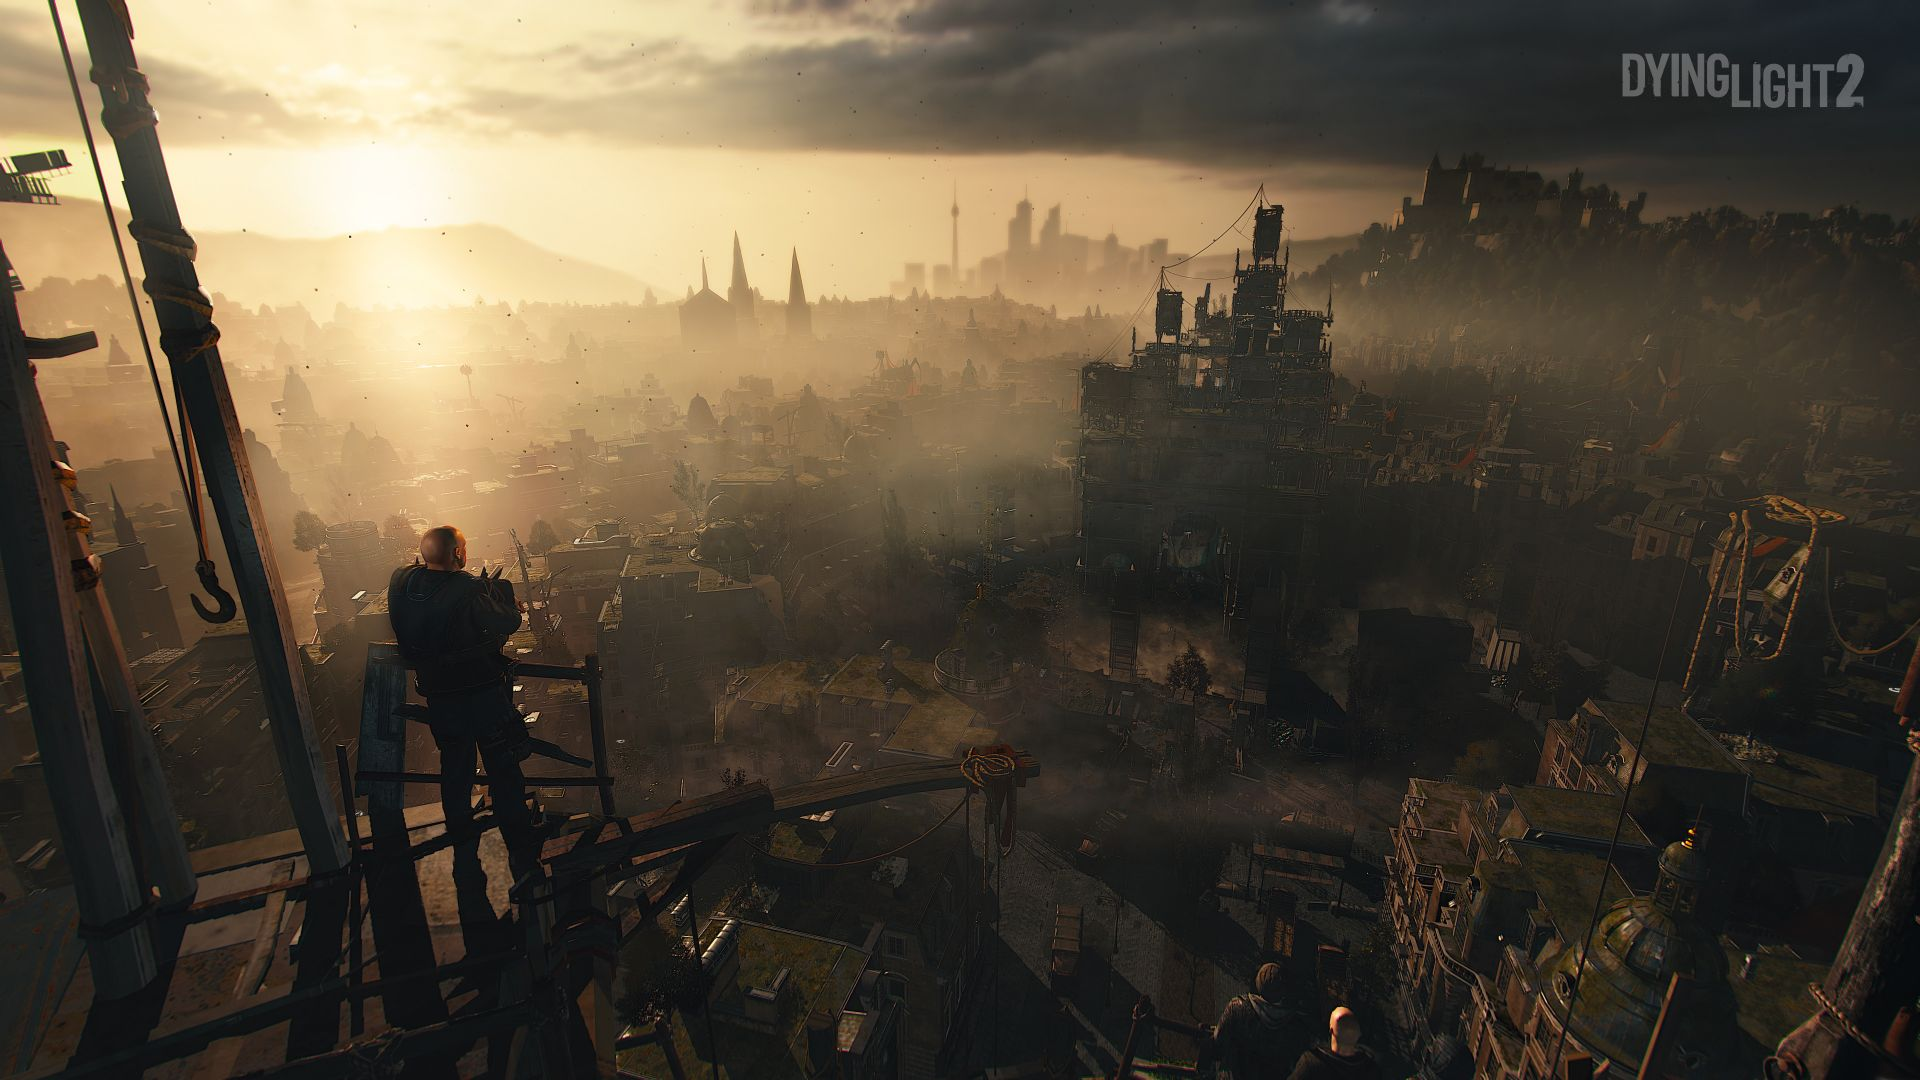 Dying Light 2, E3 2018, screenshot, 4K (horizontal)